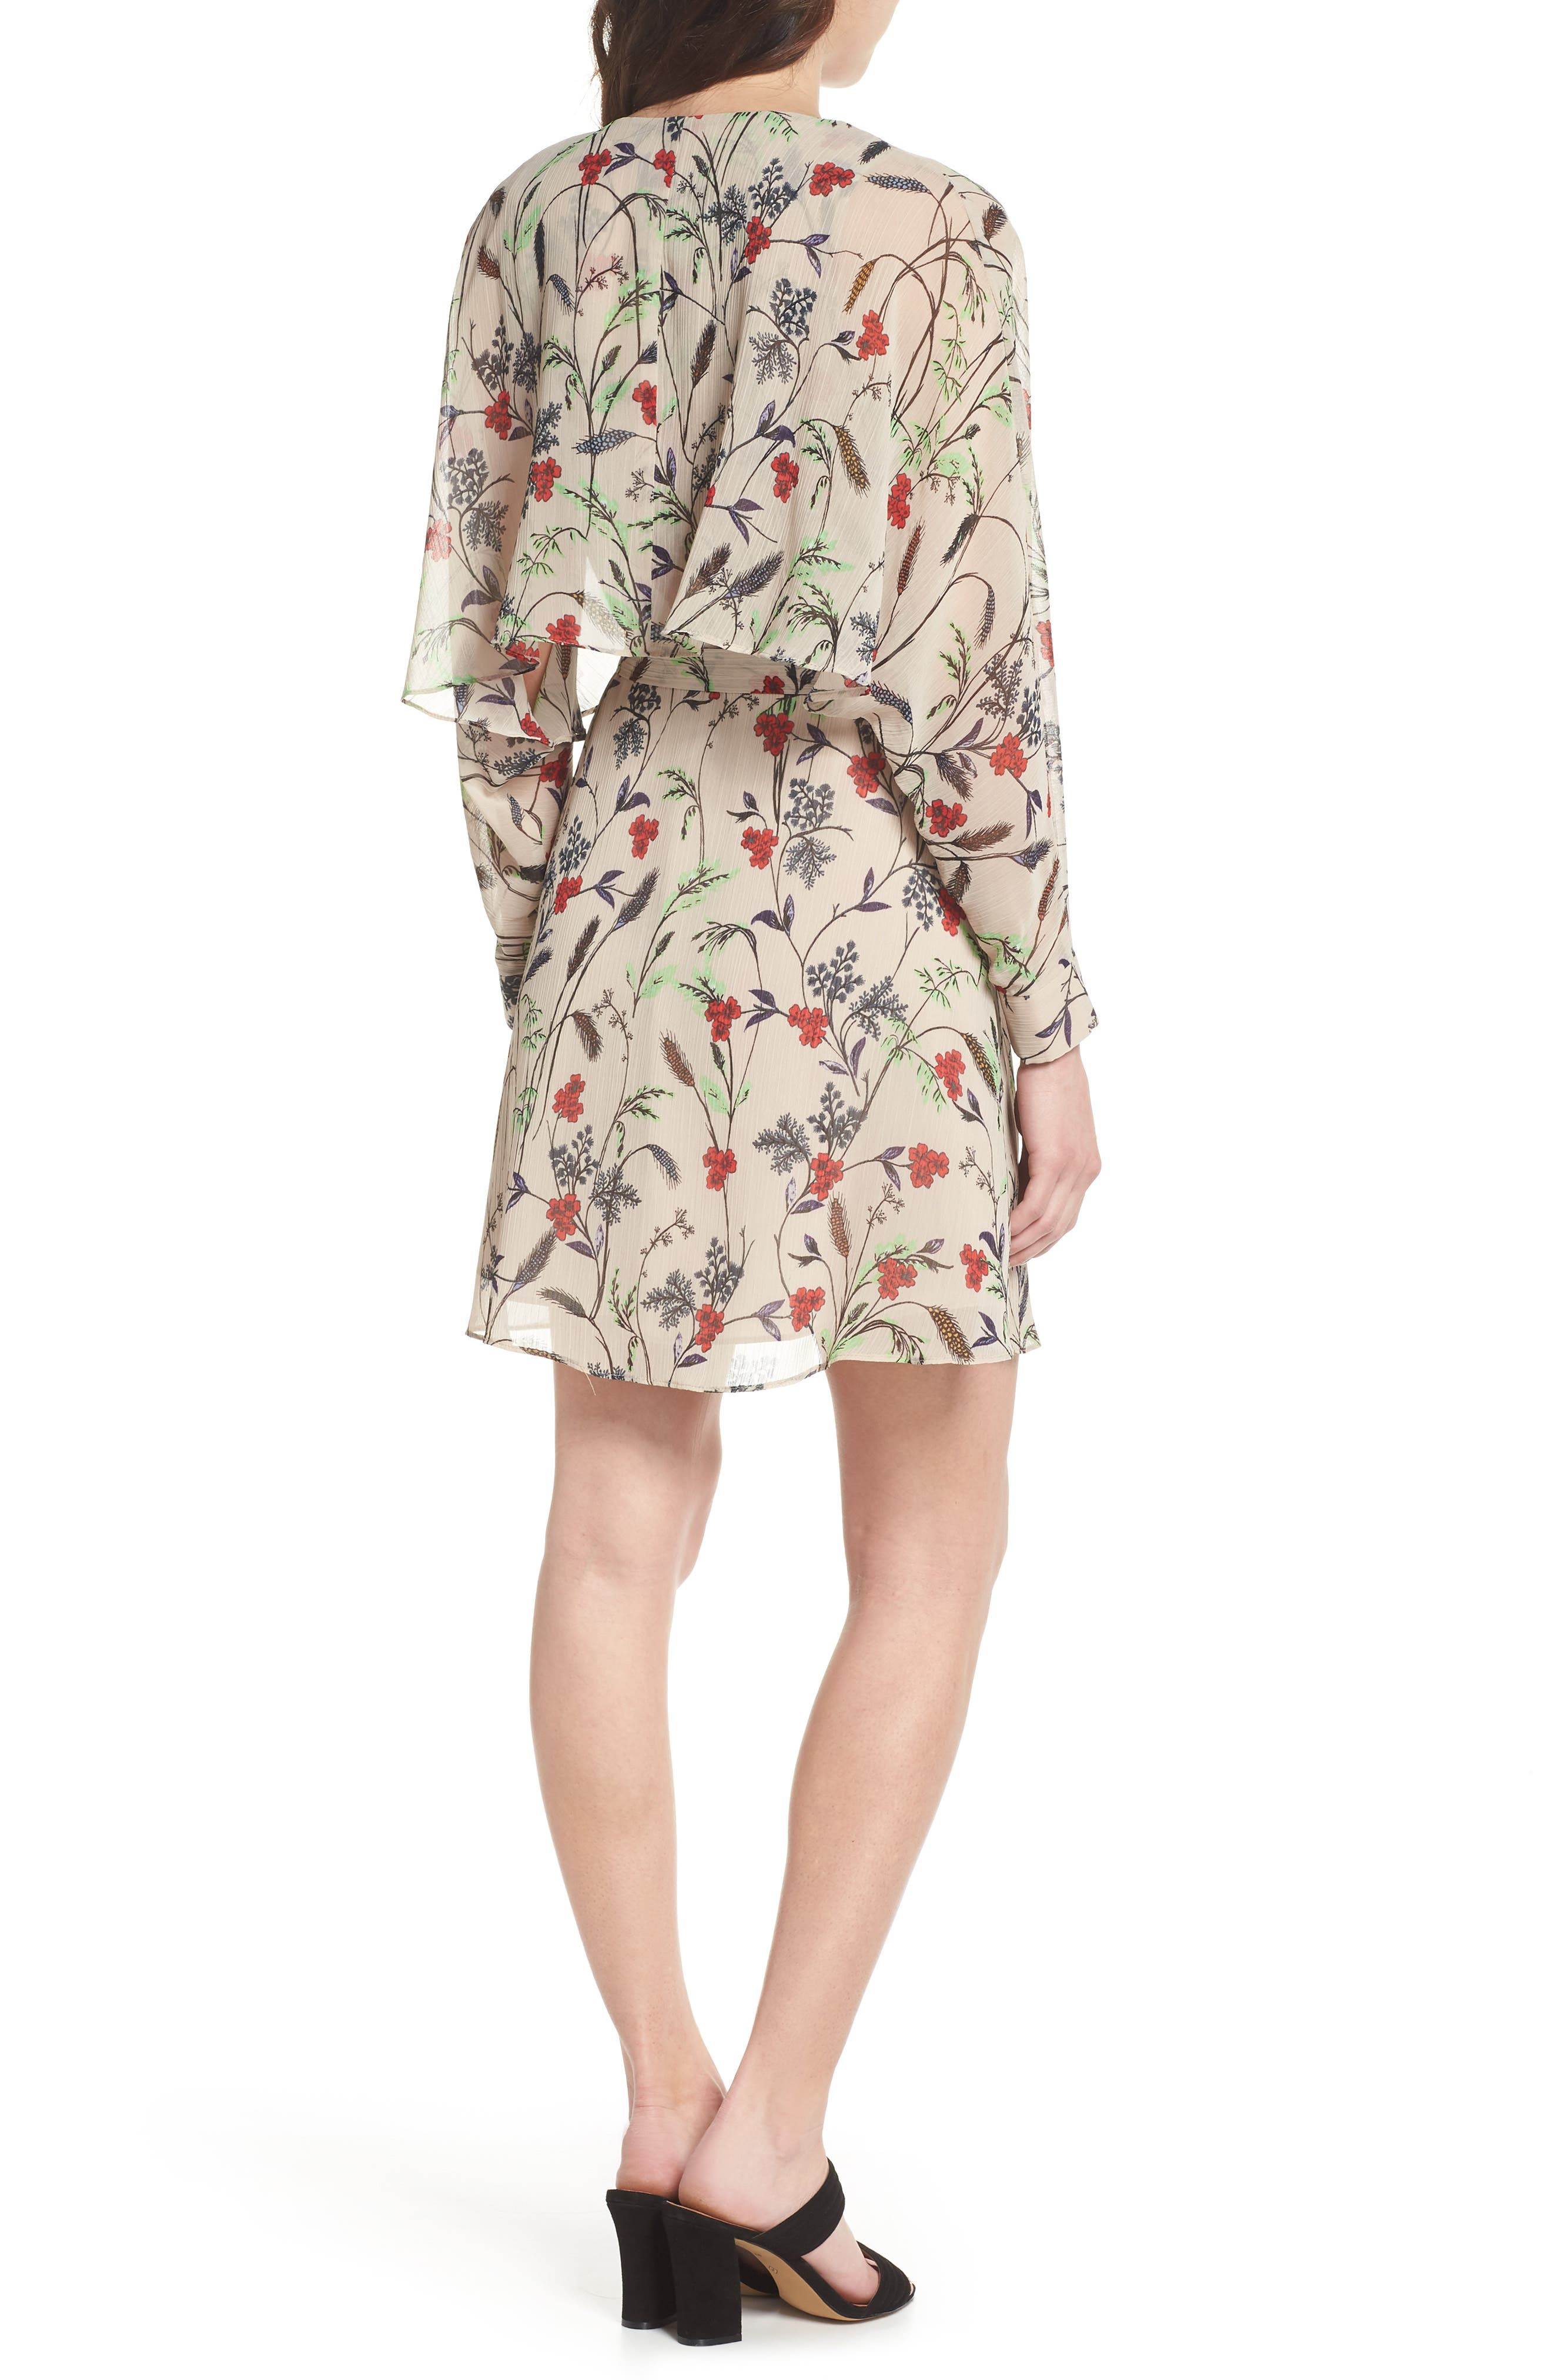 Yoryu Floral Chiffon Dress,                             Alternate thumbnail 2, color,                             Beige/ Red